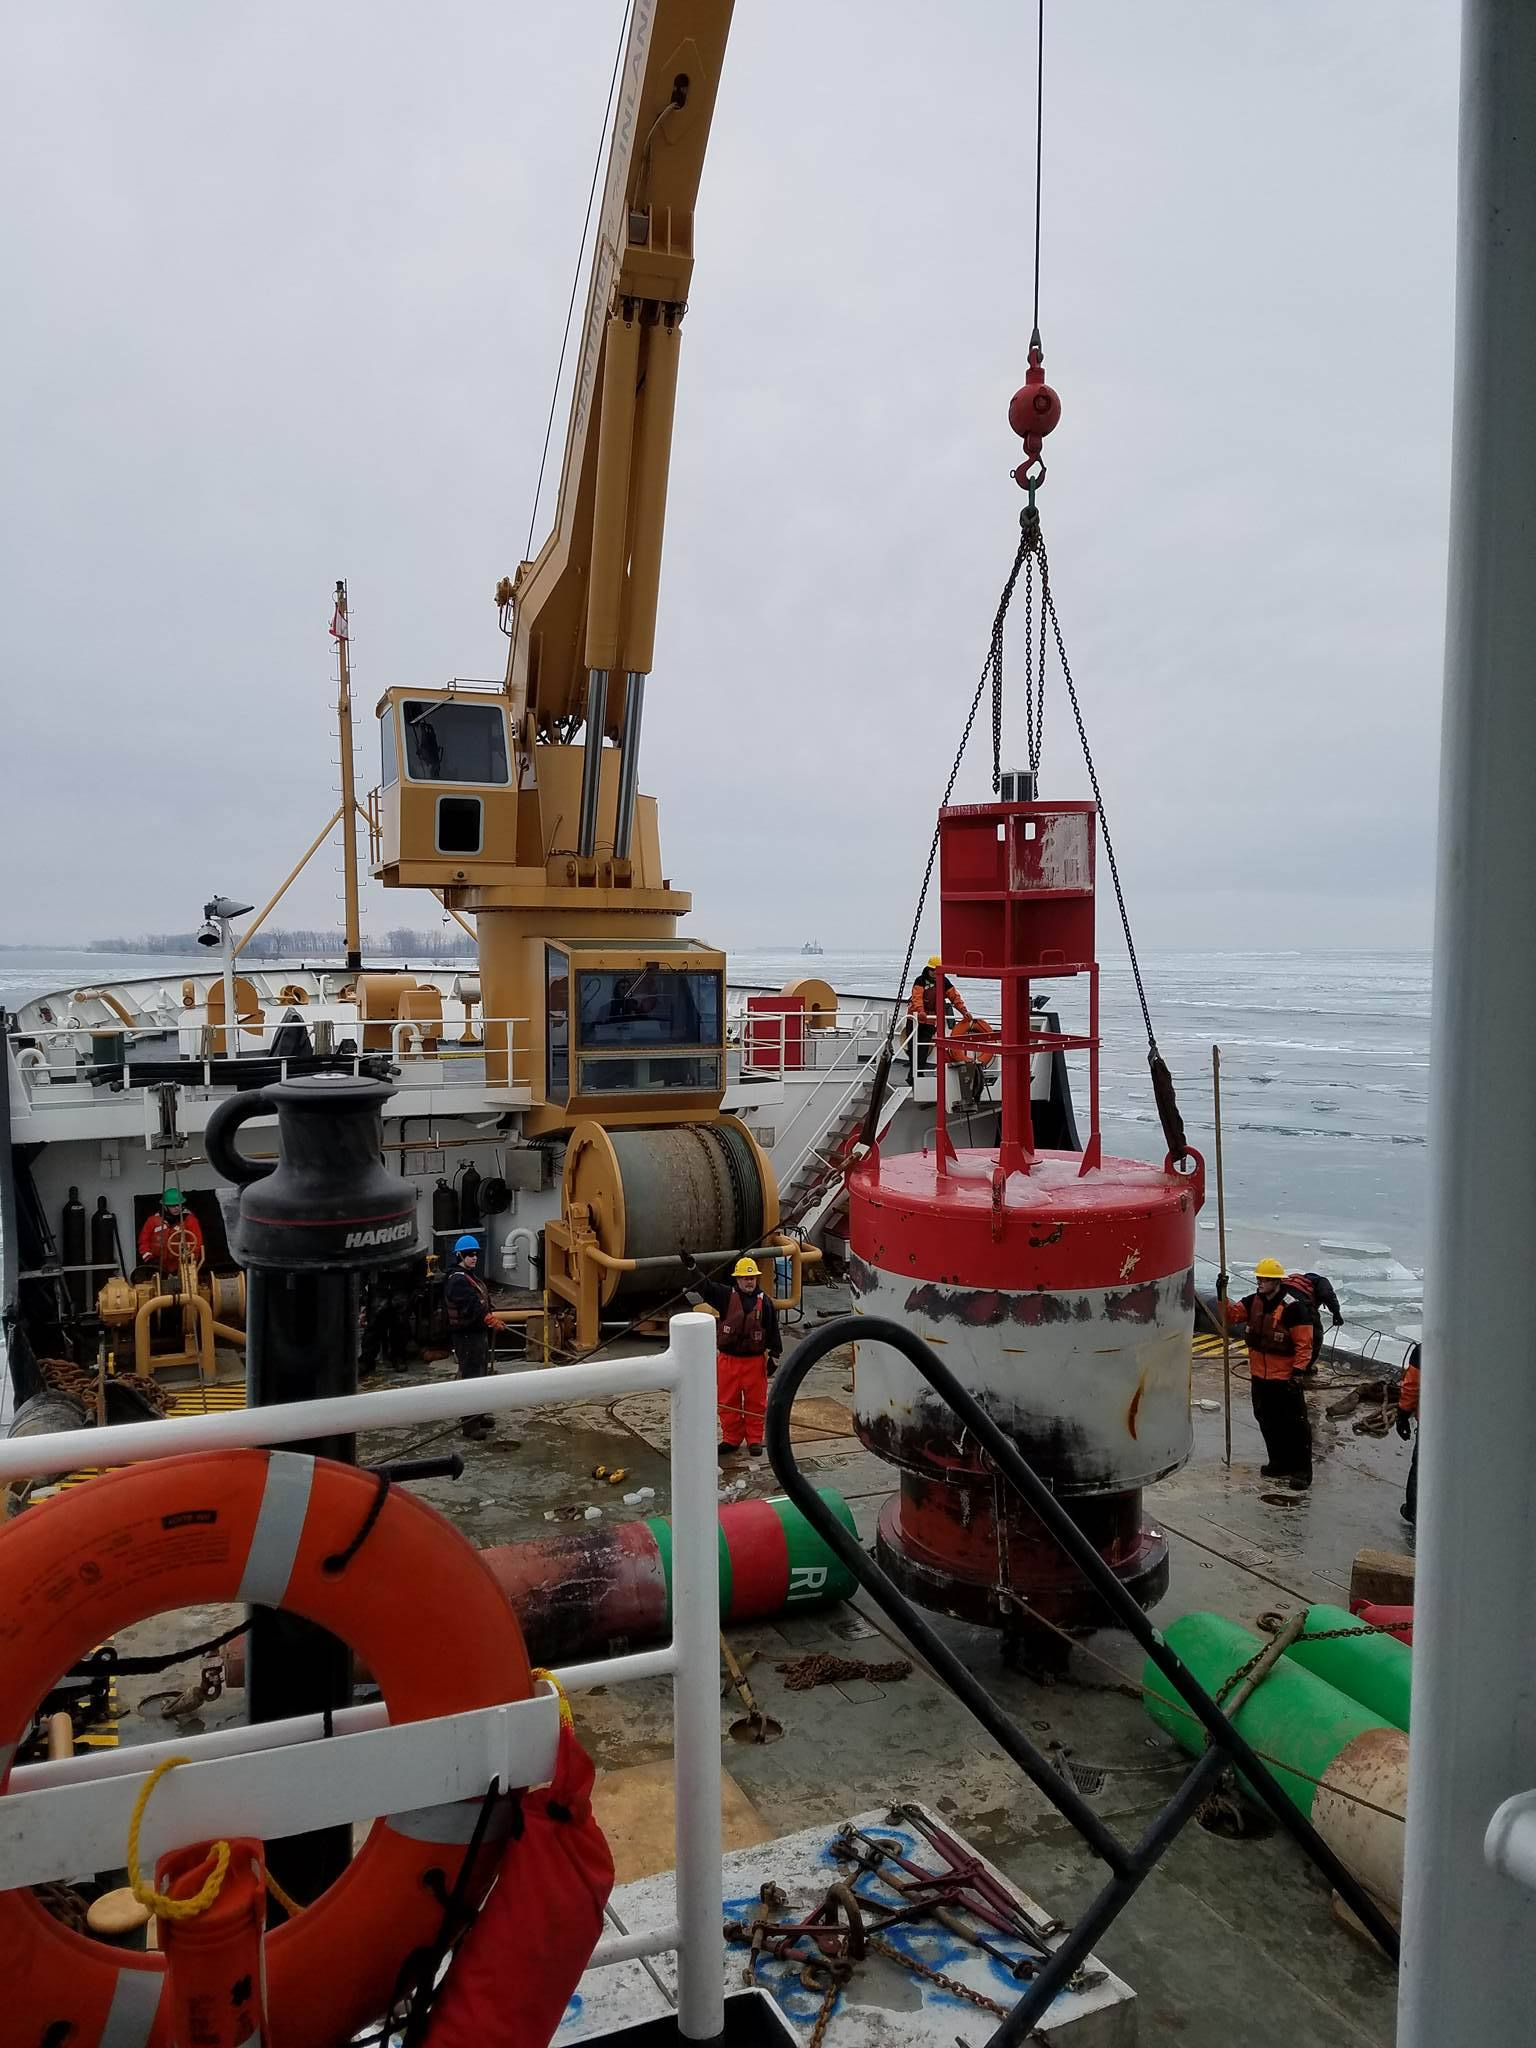 Deck crew brings in the last buoy of the season.